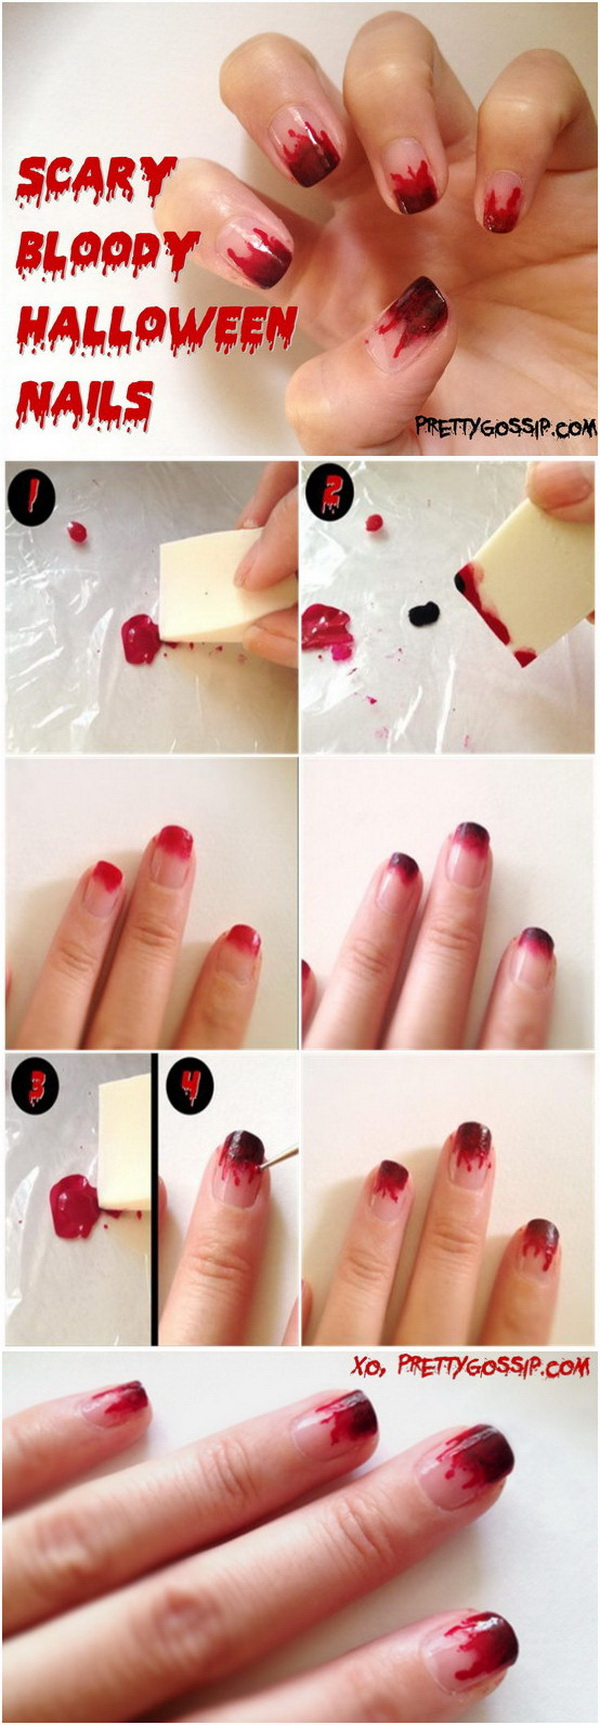 DIY Scary & Bloody Halloween Nail.